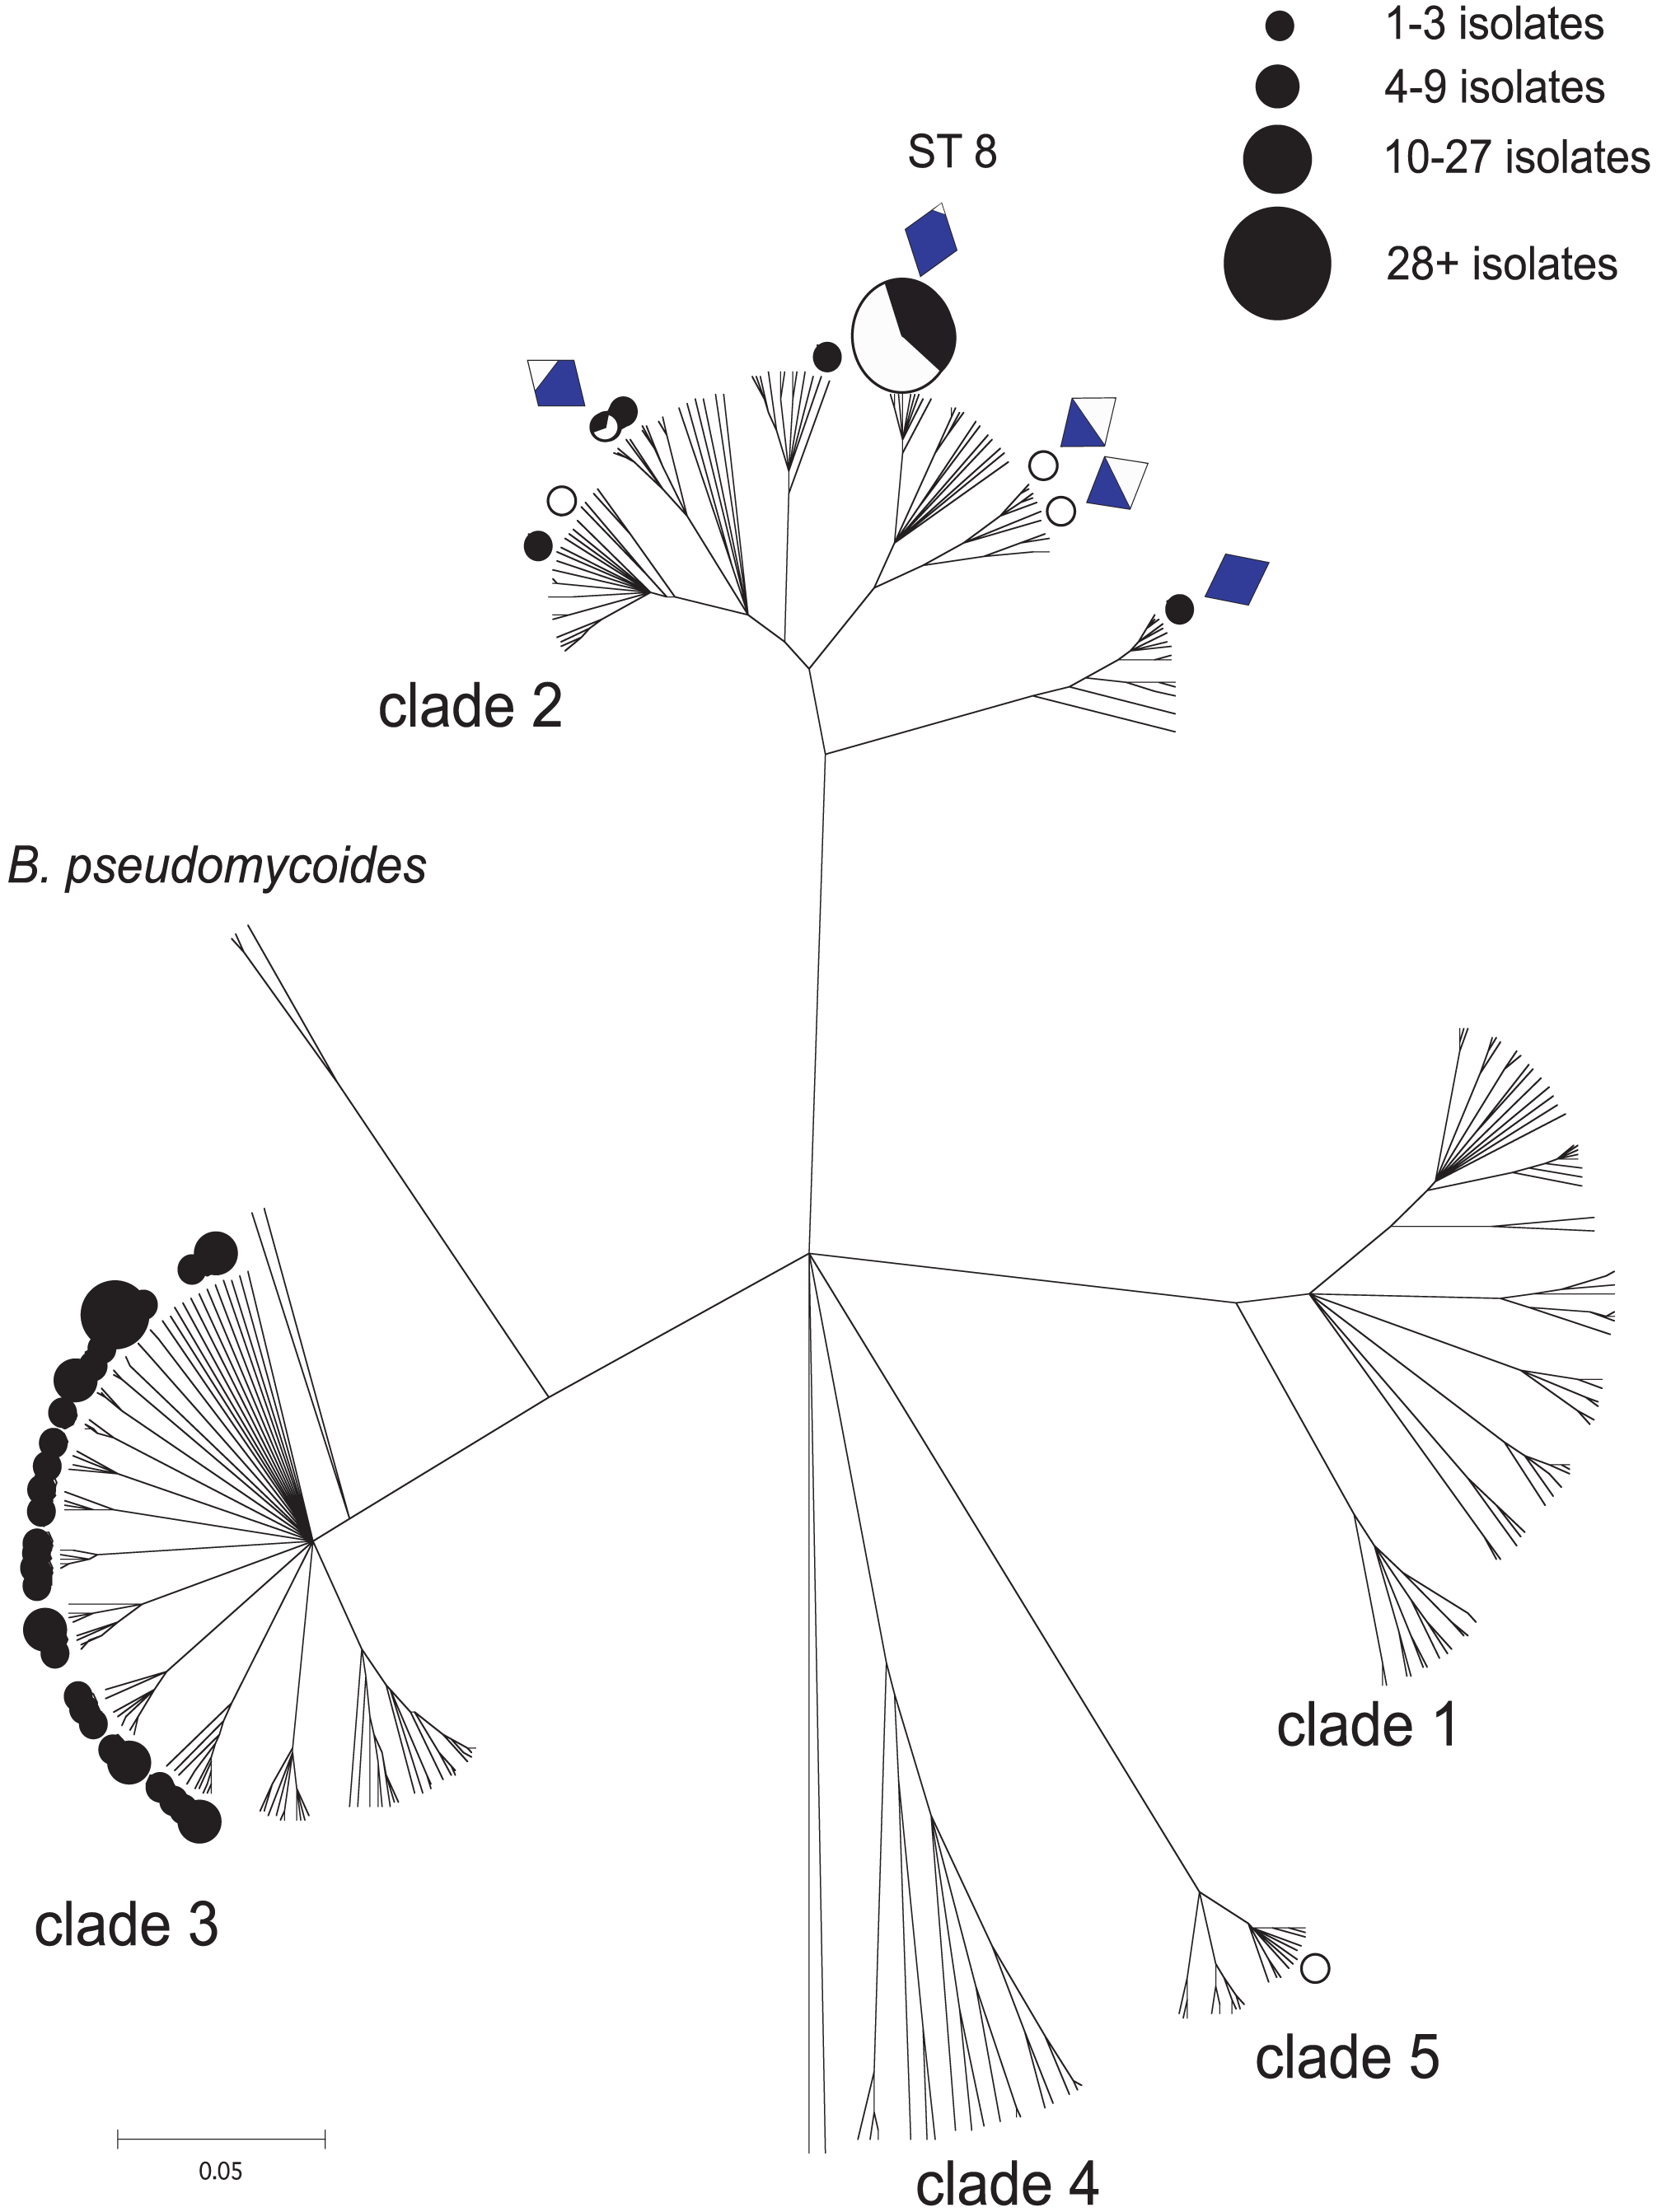 A CLONALFRAME genealogy of the <i>Bacillus cereus</i> group indicating the niche/habitat associations of STs recovered in this study.